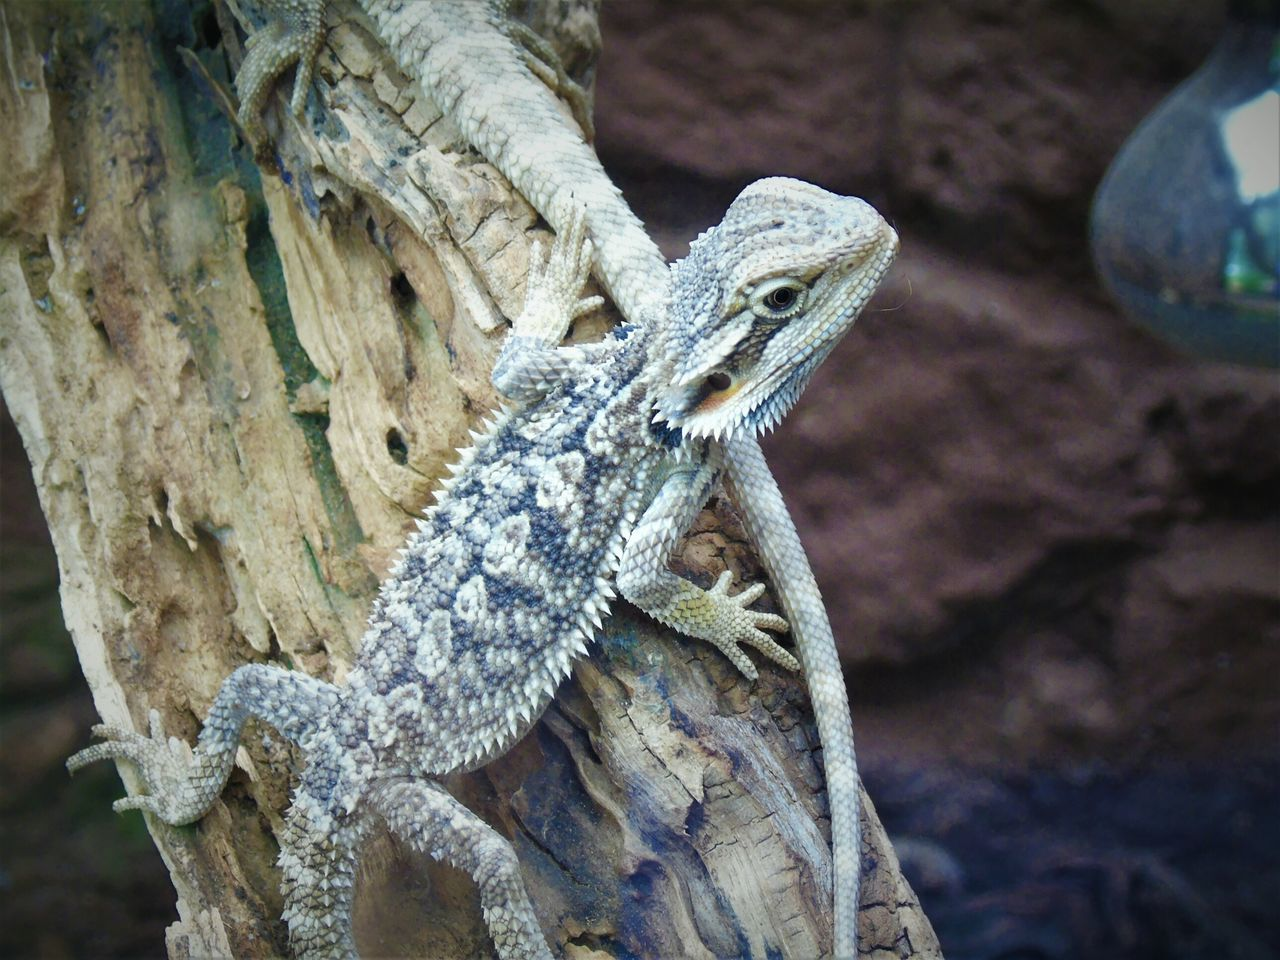 reptile, animal themes, animals in the wild, one animal, animal, lizard, vertebrate, animal wildlife, bearded dragon, focus on foreground, close-up, no people, day, nature, outdoors, tree, branch, solid, rock, zoology, animal scale, animal head, iguana